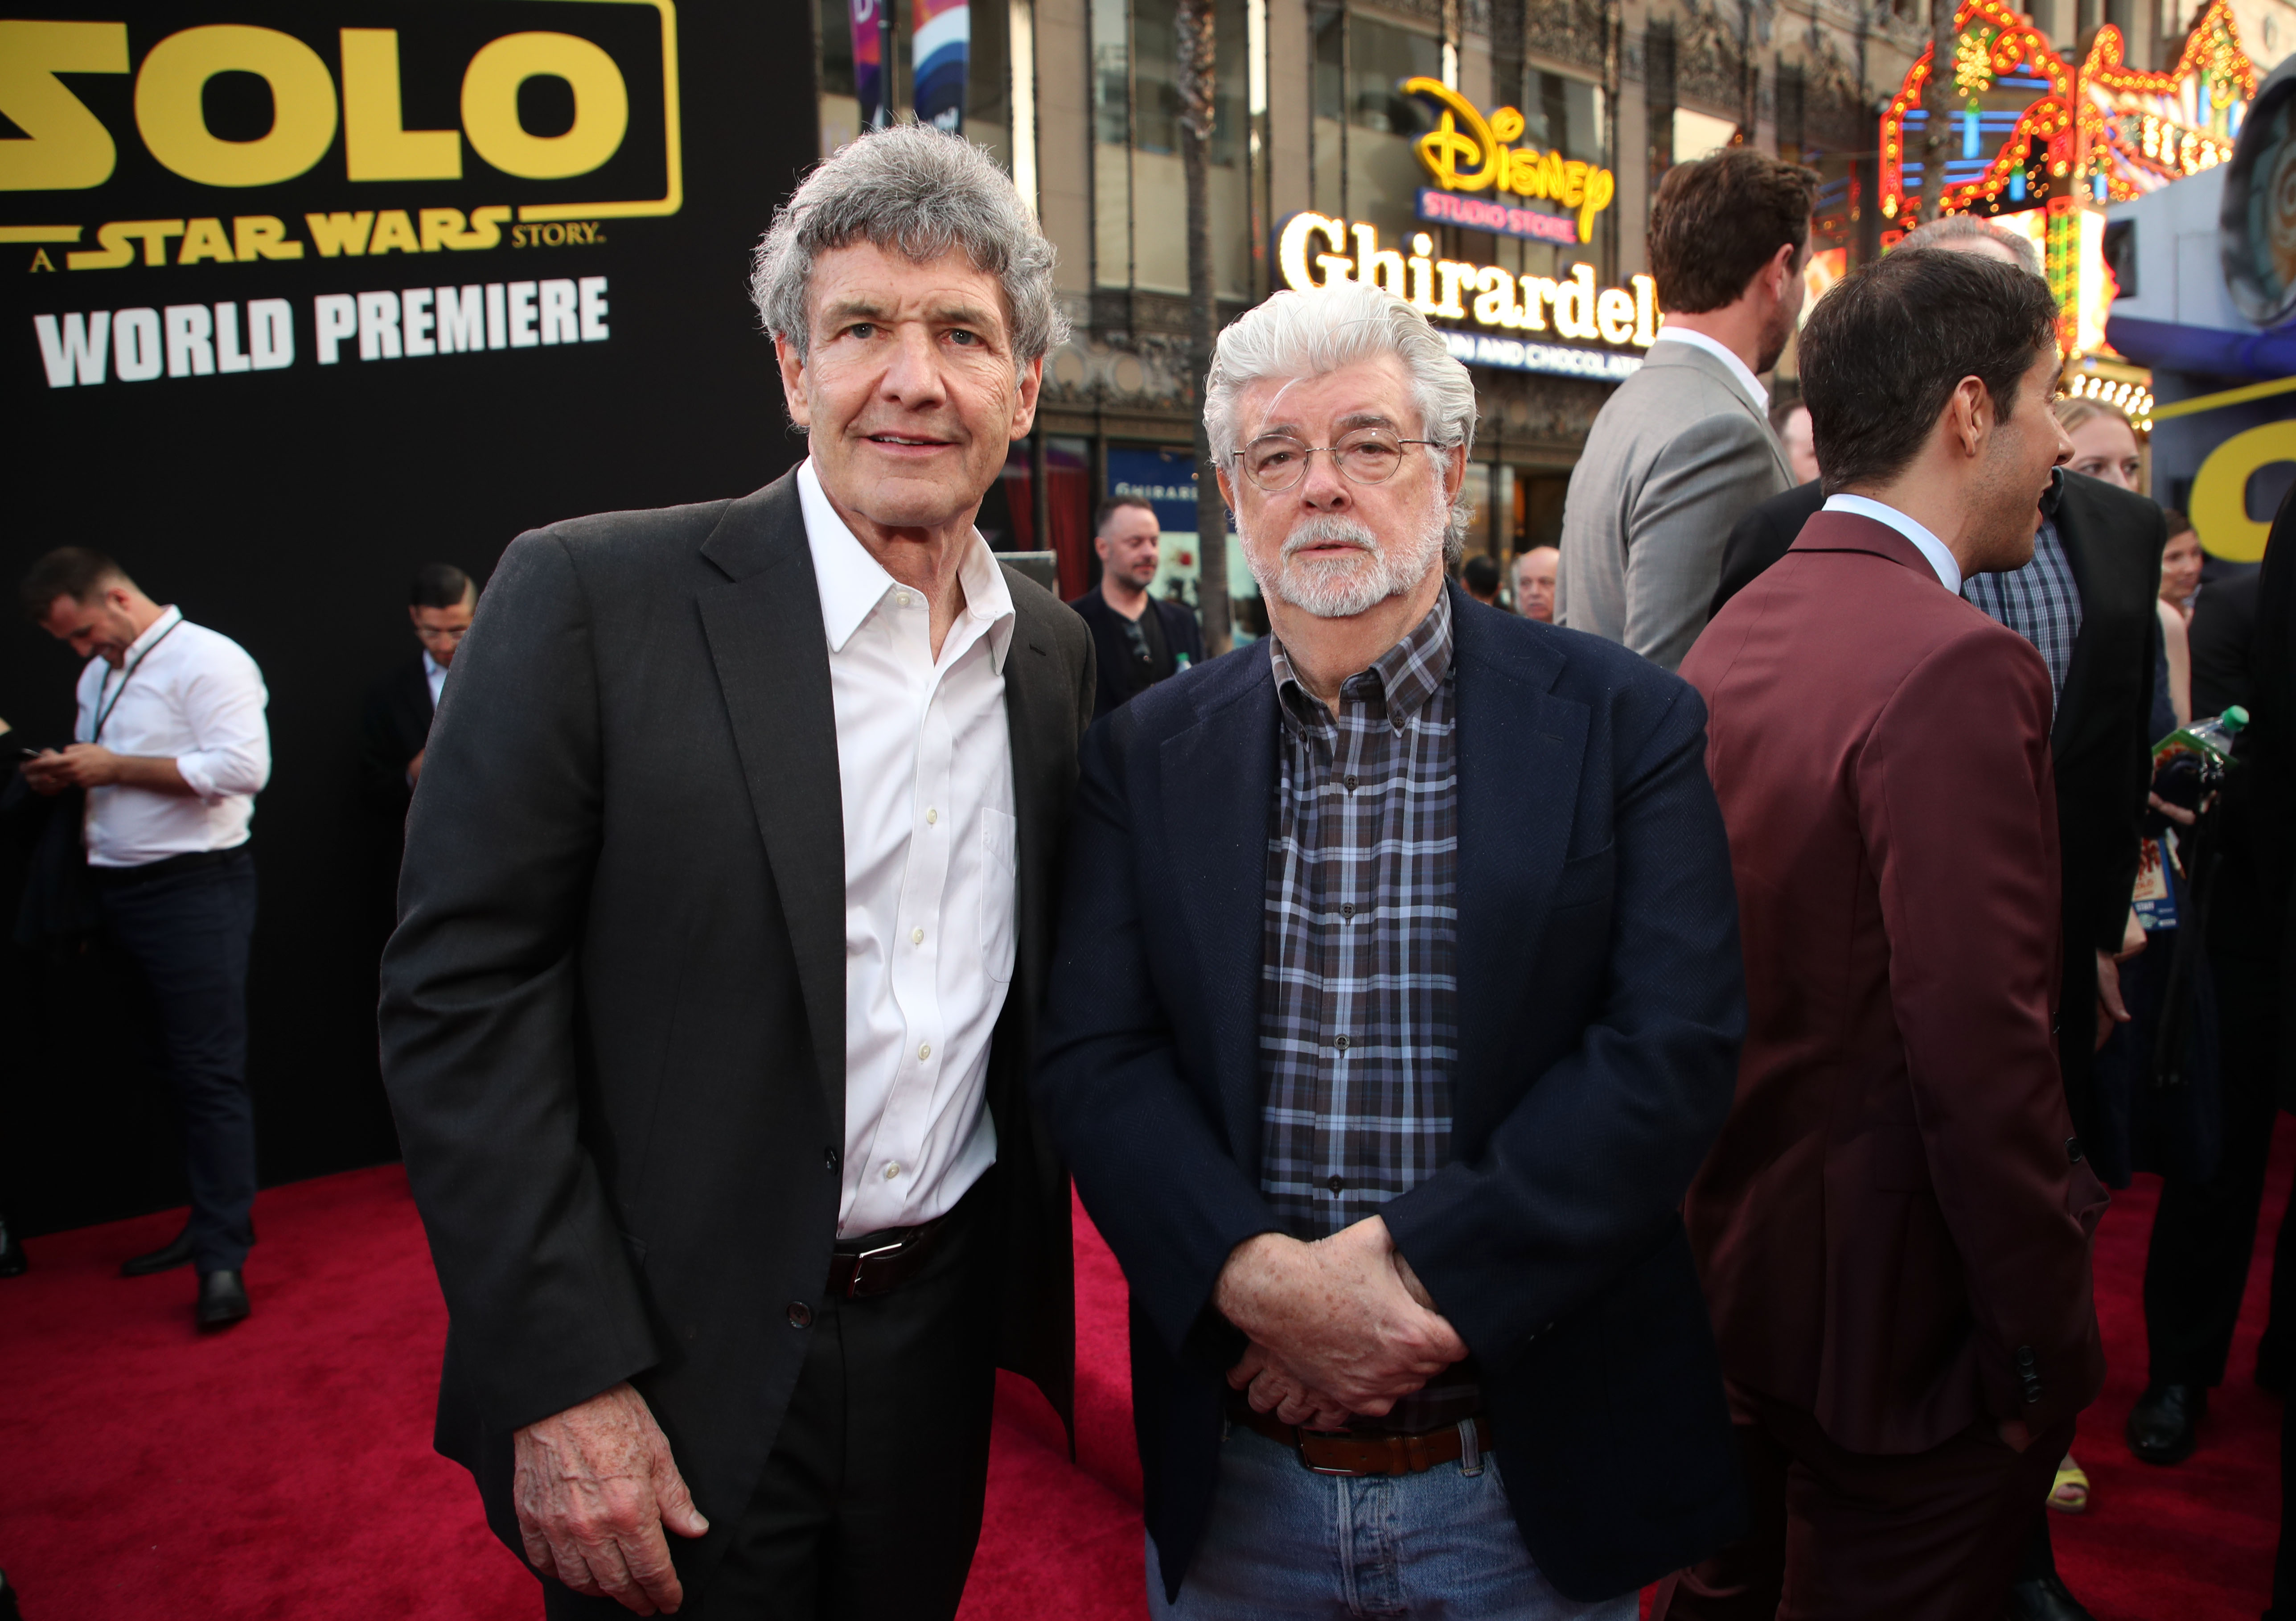 Alan F. Horn and George Lucas'Solo: A Star Wars Story' film premiere, Arrivals, Los Angeles, USA - 10 May 2018